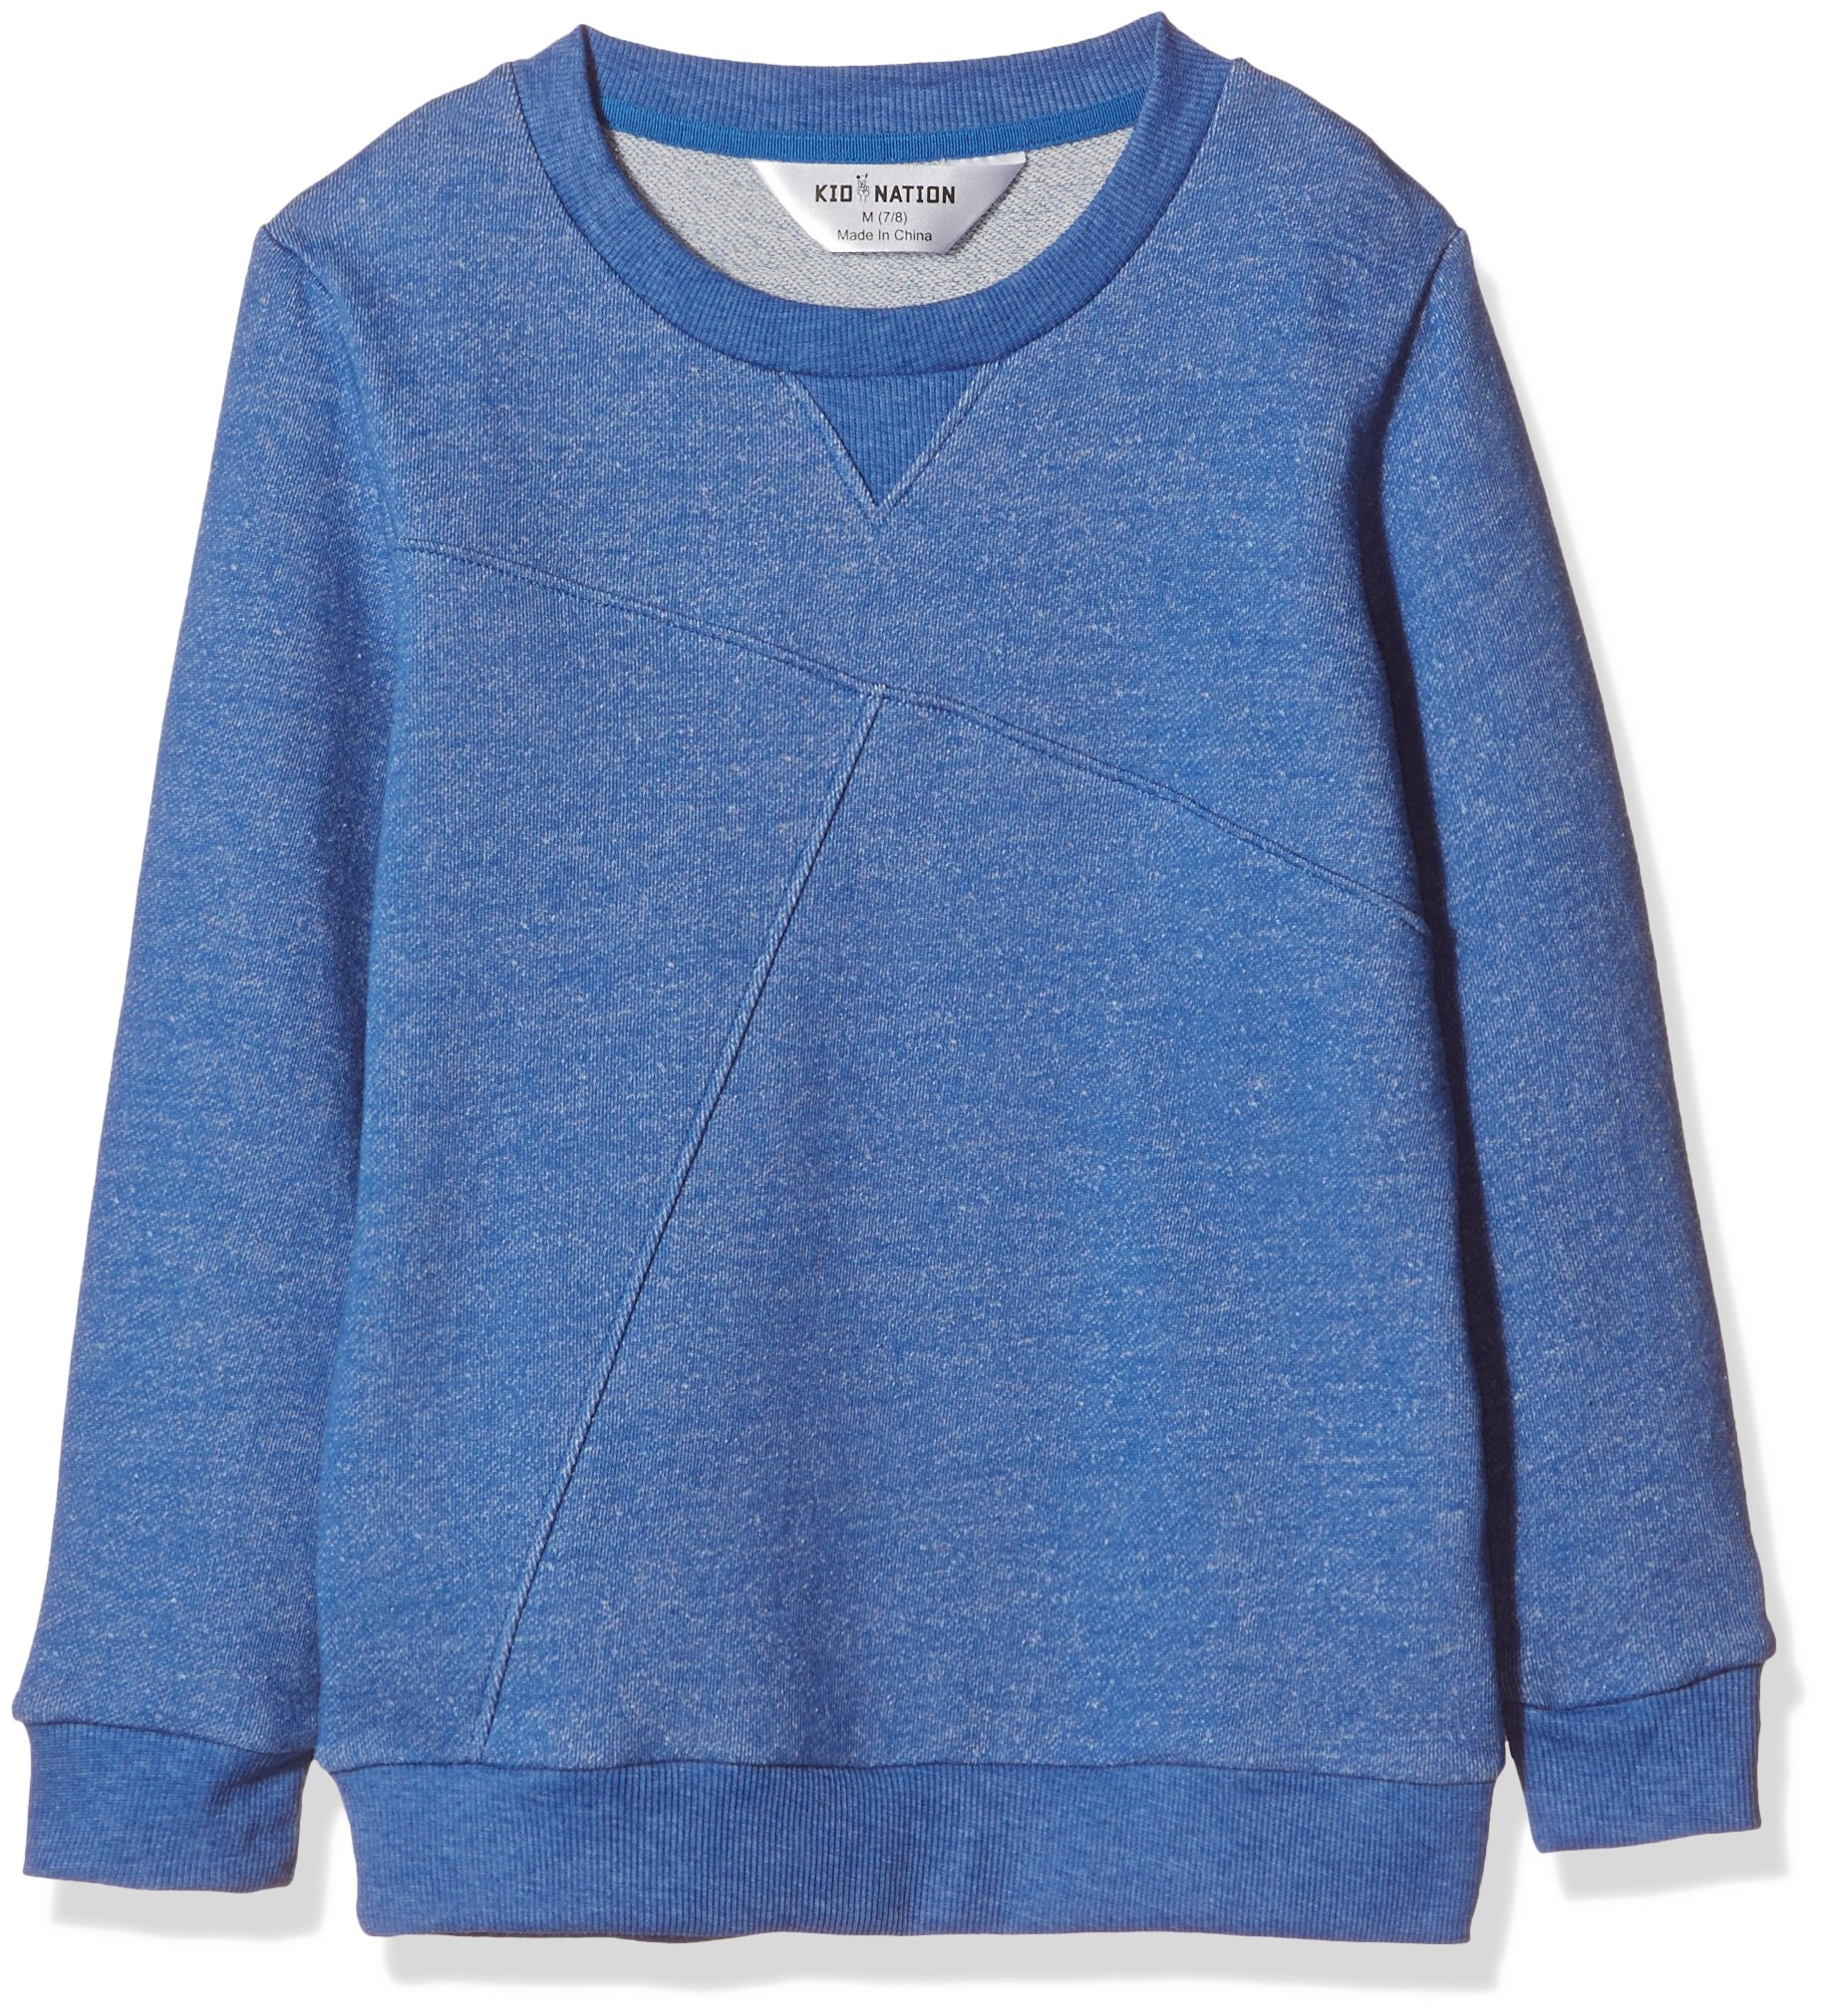 Kid Nation Kids' French Terry Sweatshirt for Boys Girls L Marled Blue